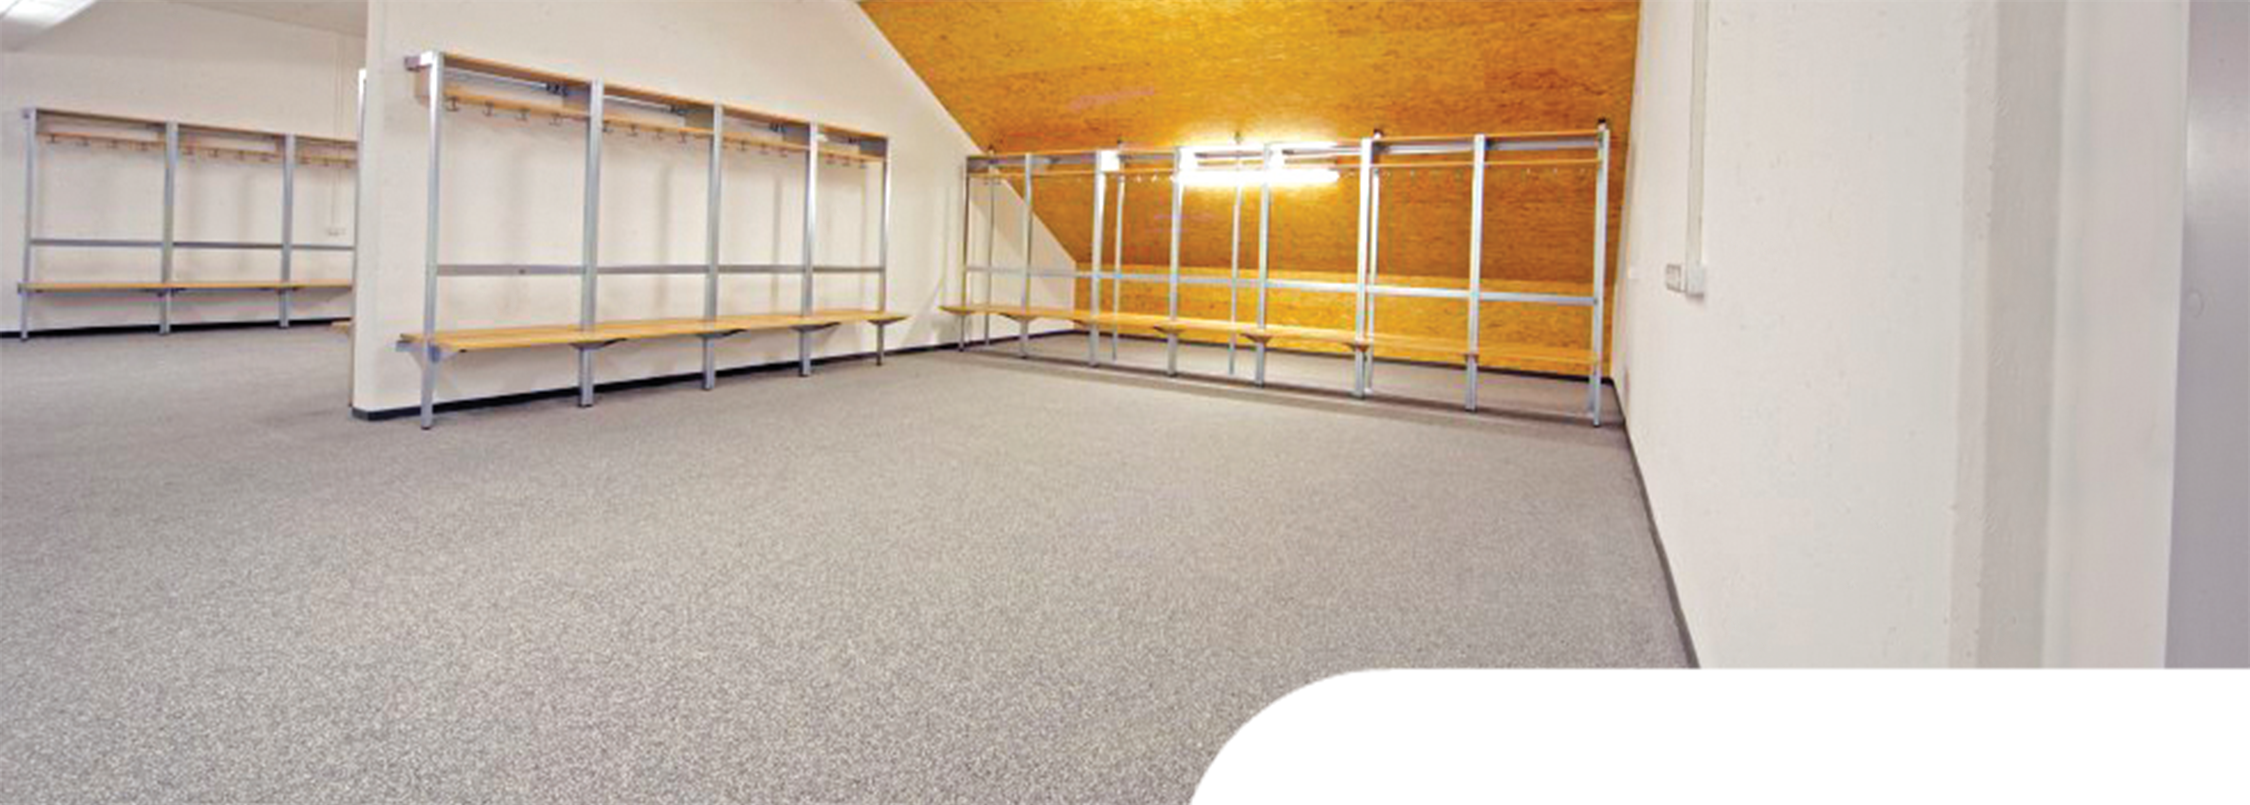 Approx. 95% Color Rubber Flooring